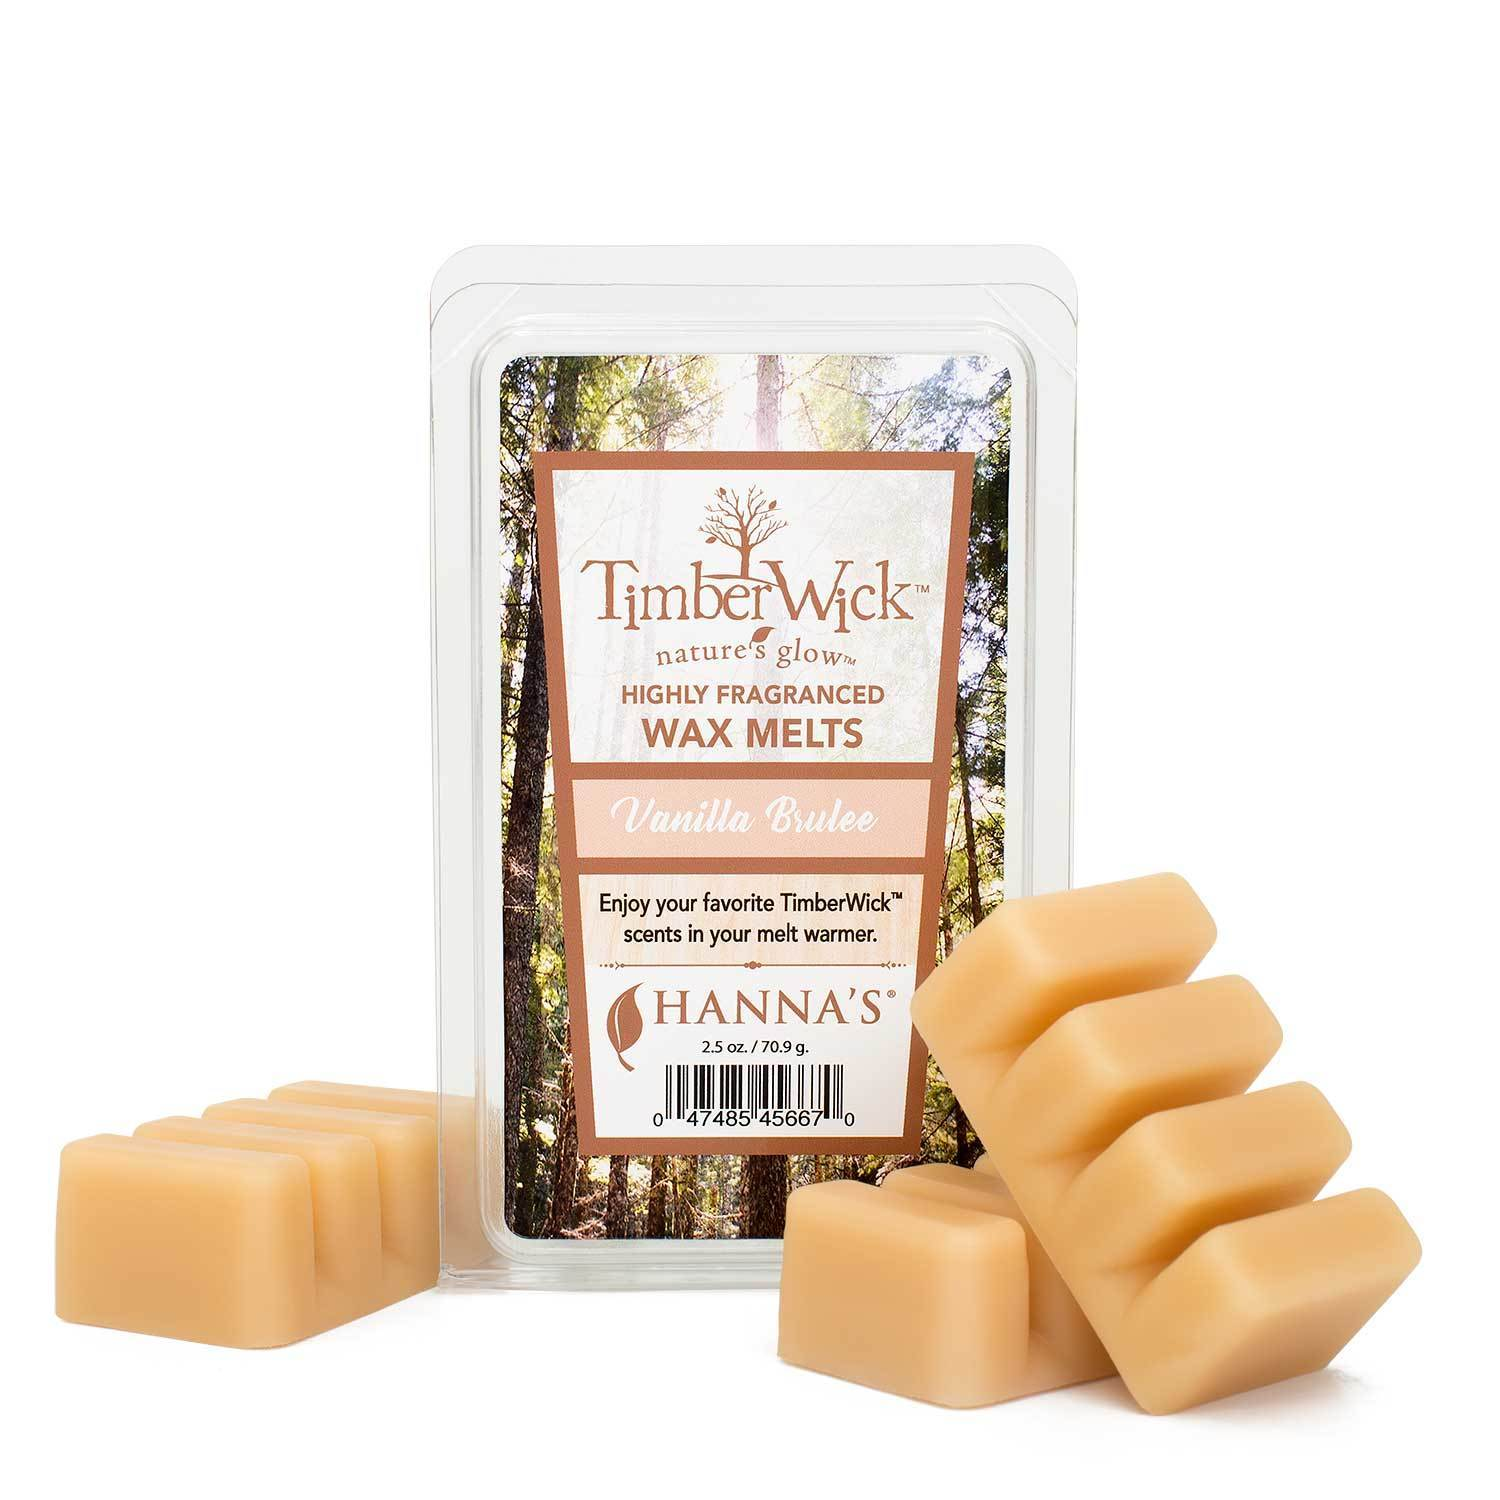 Timberwick Vanilla Brulee Wax Melts 6 Pack Melts Candlemart.com $ 12.99